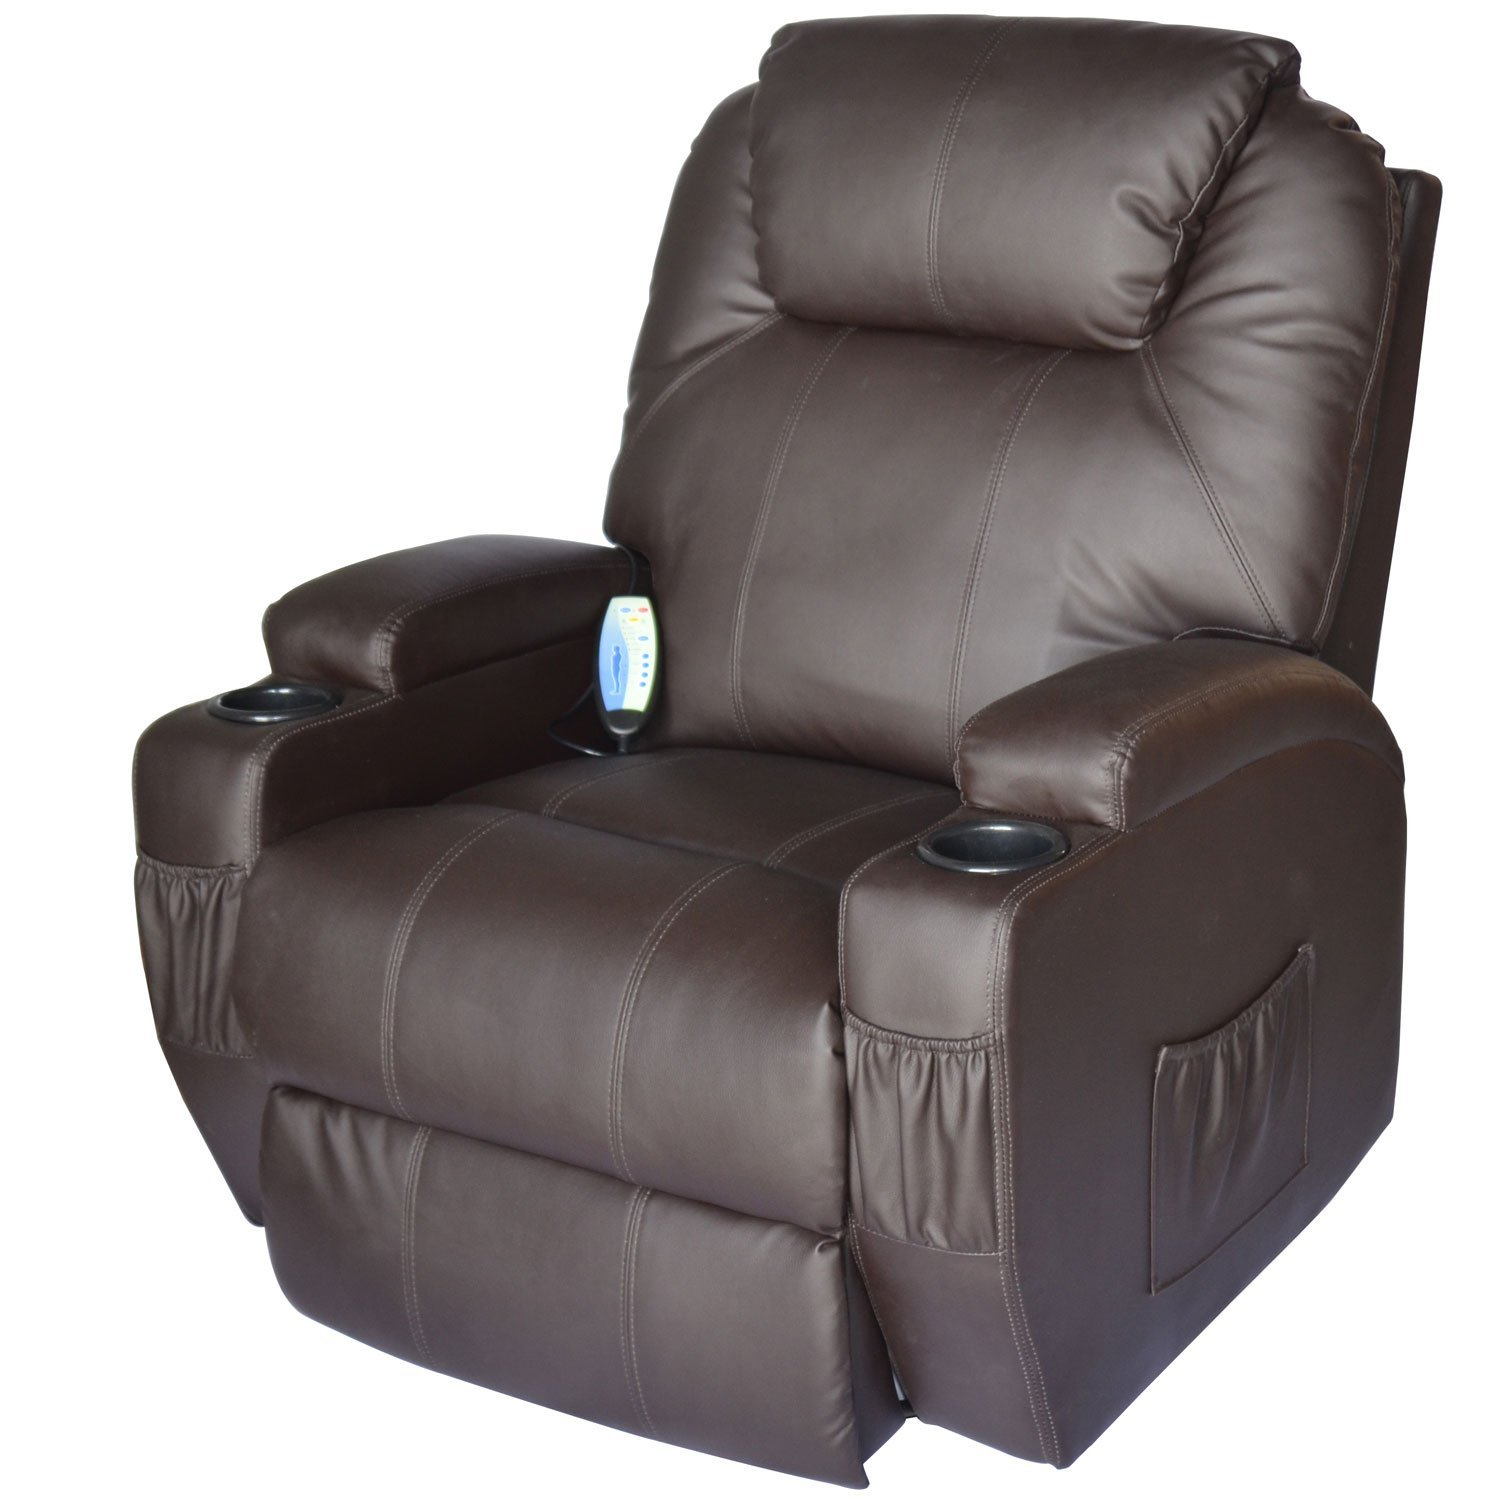 The Top Rated Recliner Brands - Best Recliners